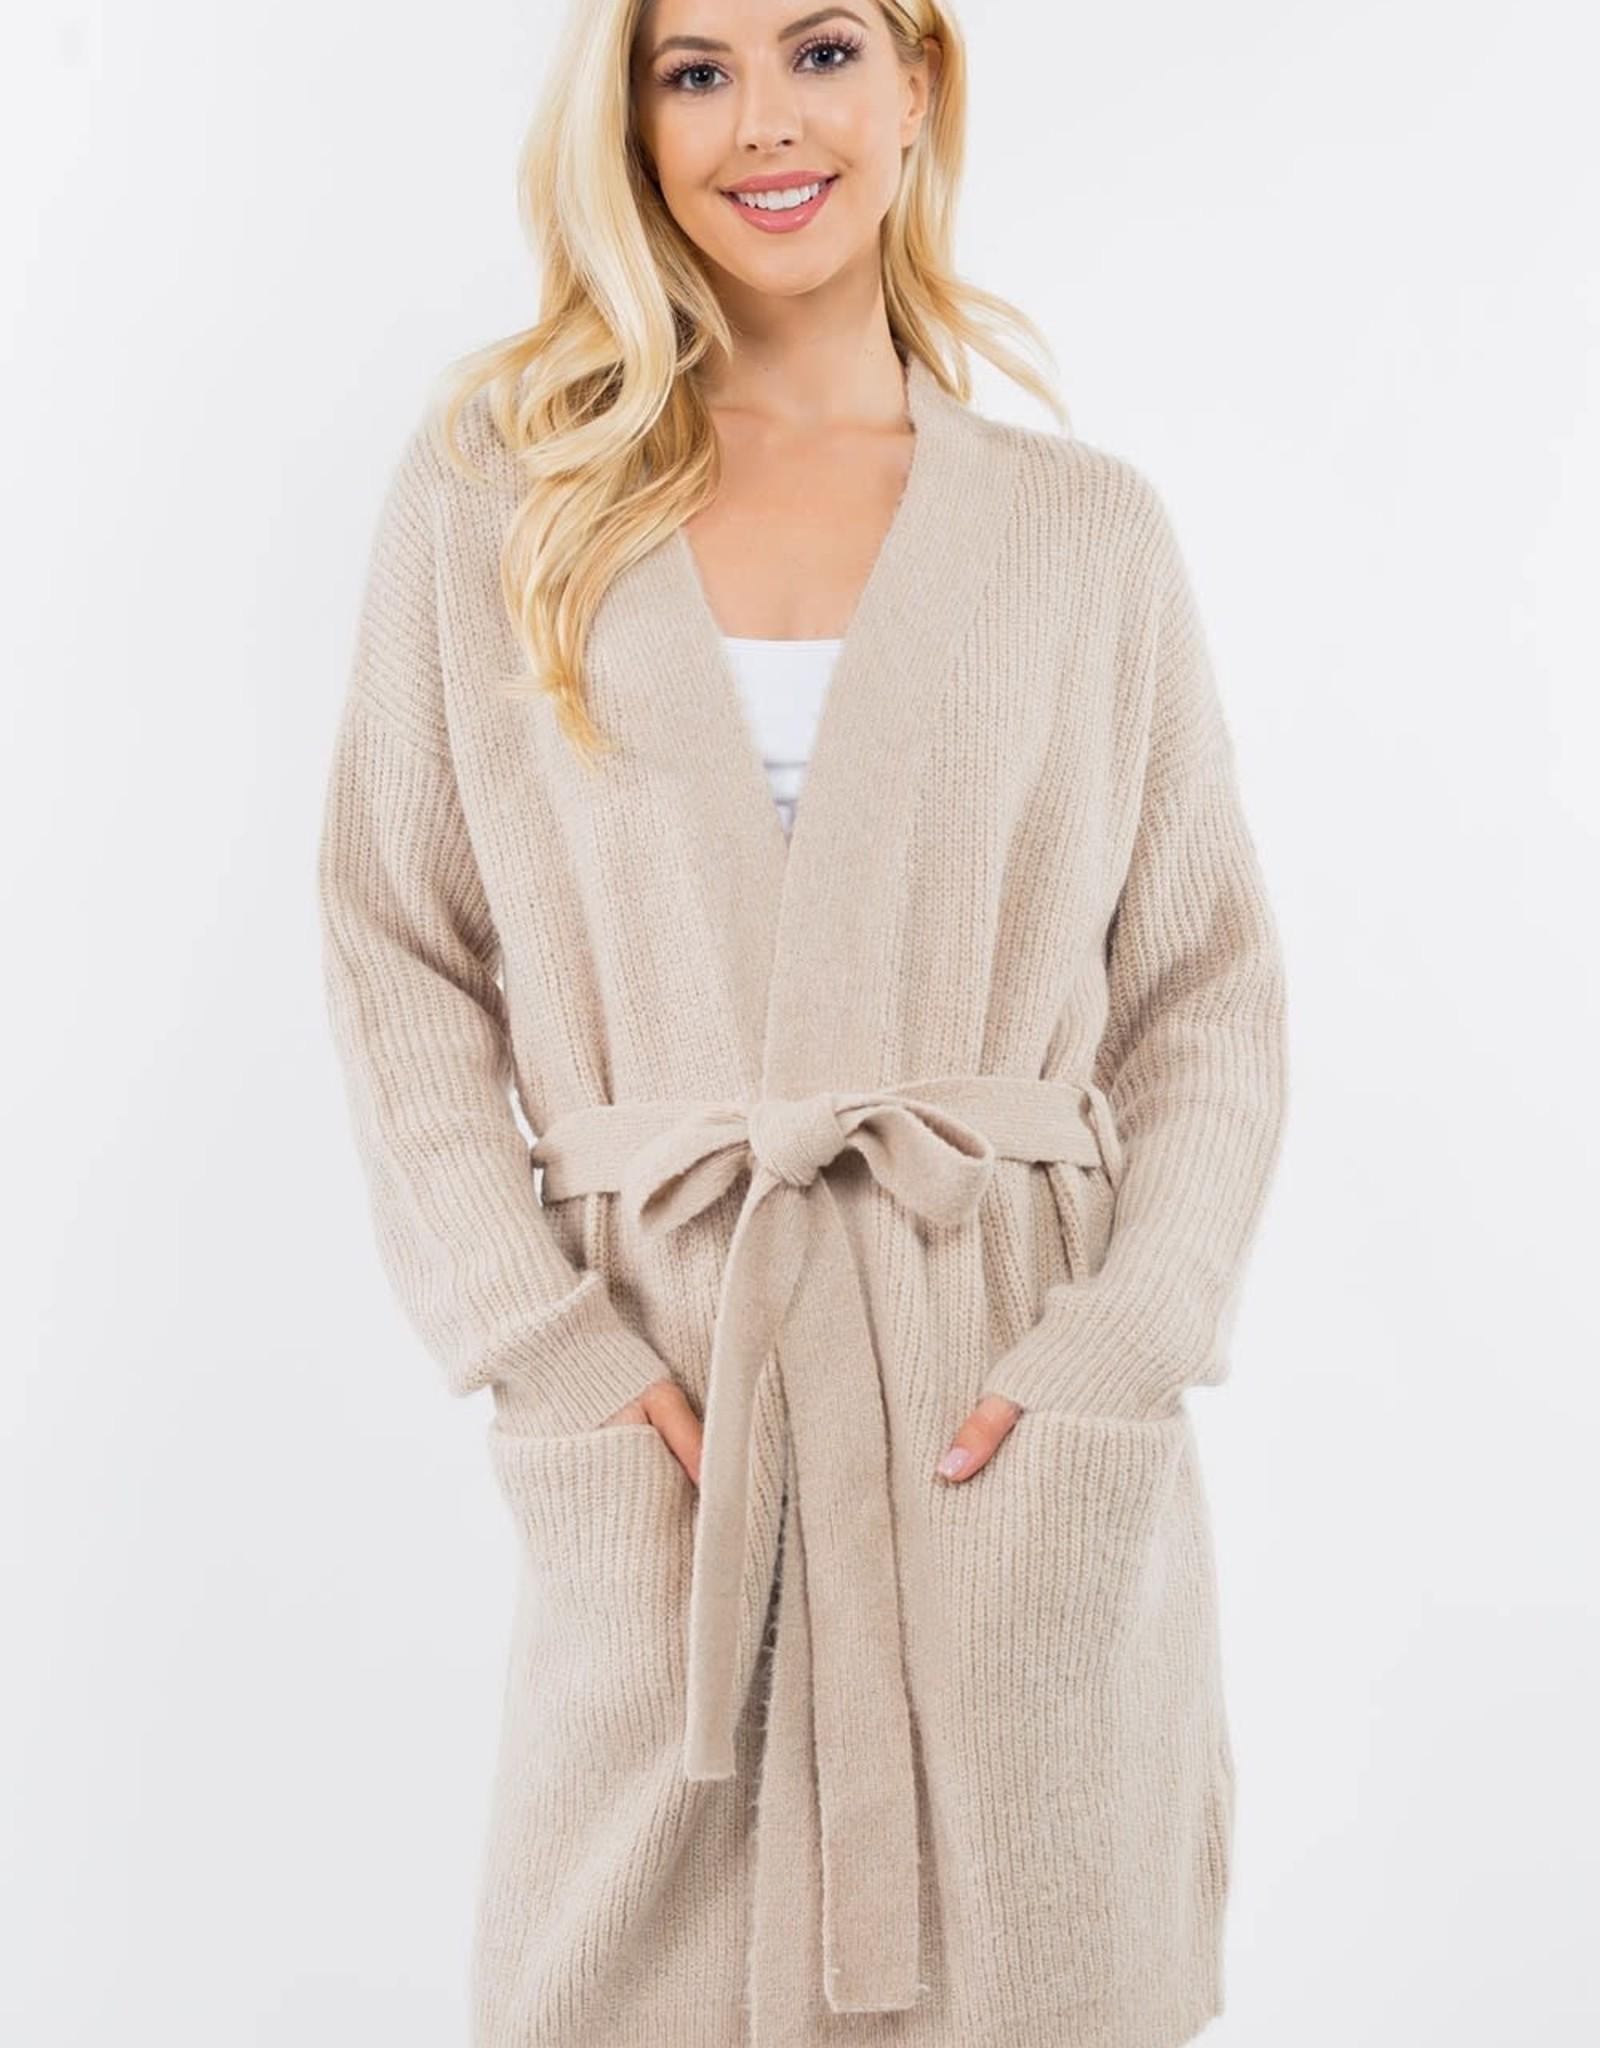 Miss Bliss Robe Front Tie Open Cardigan- Taupe